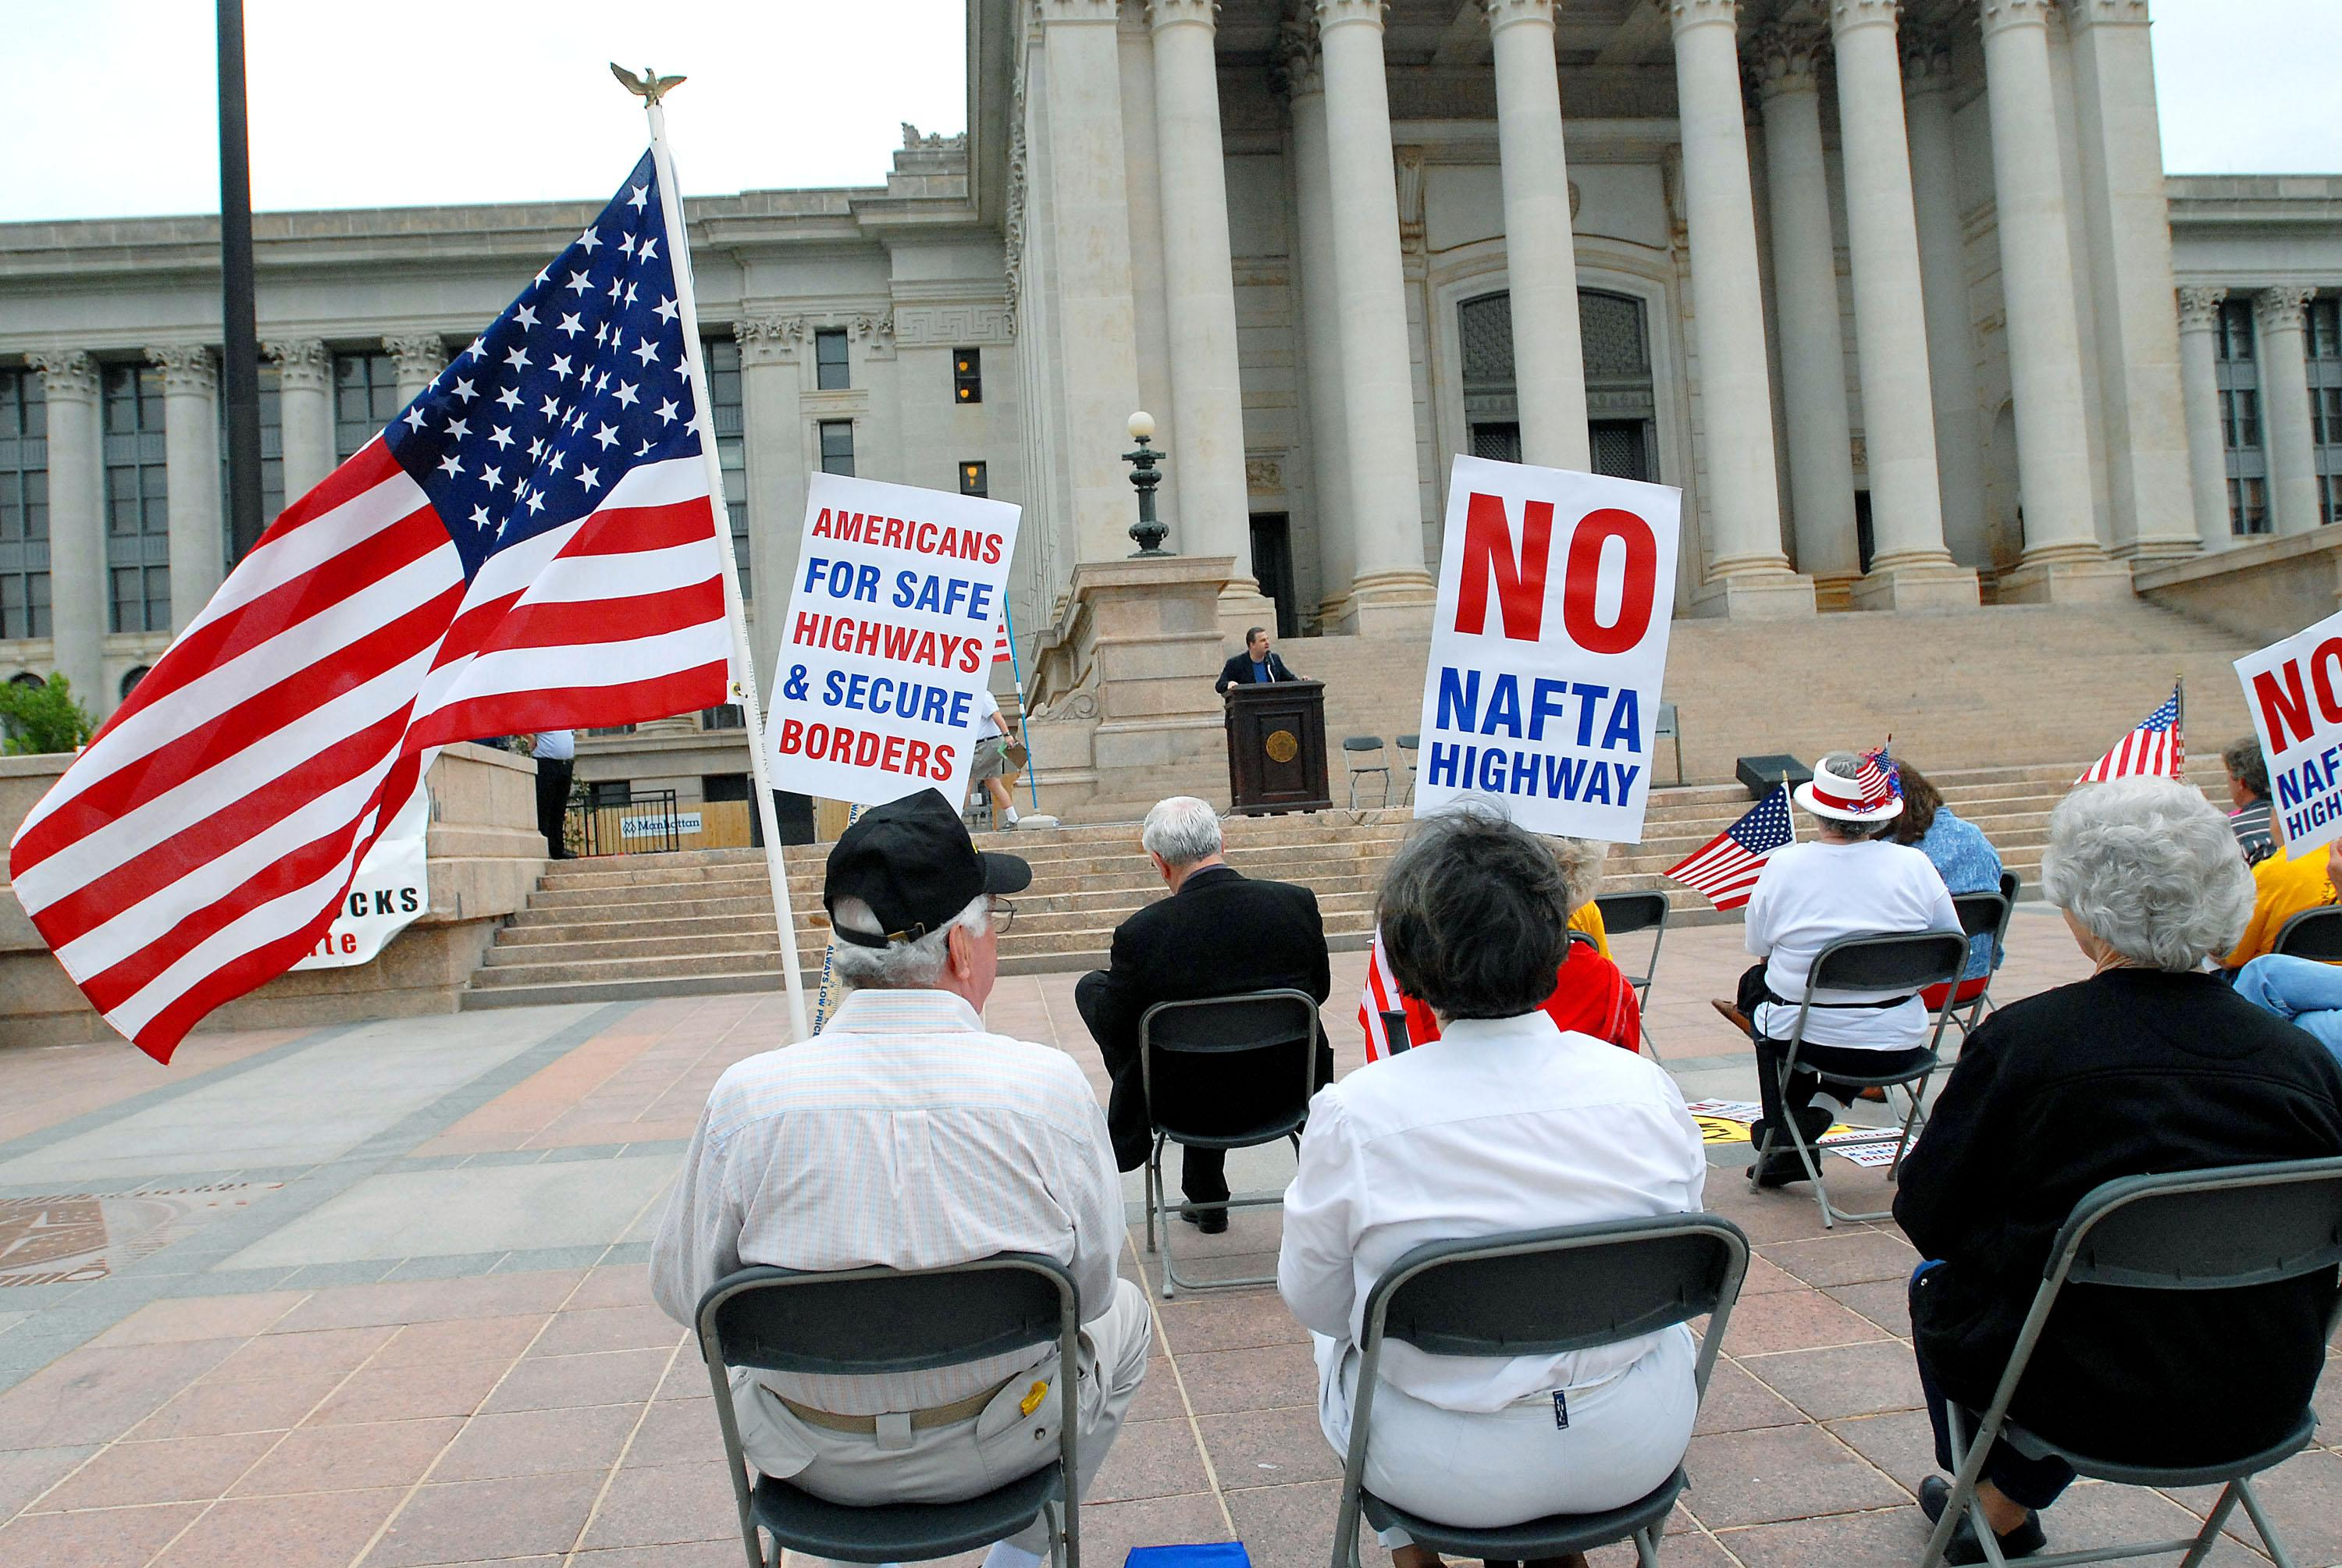 Is Nafta Good Americans Split On North American Free Trade